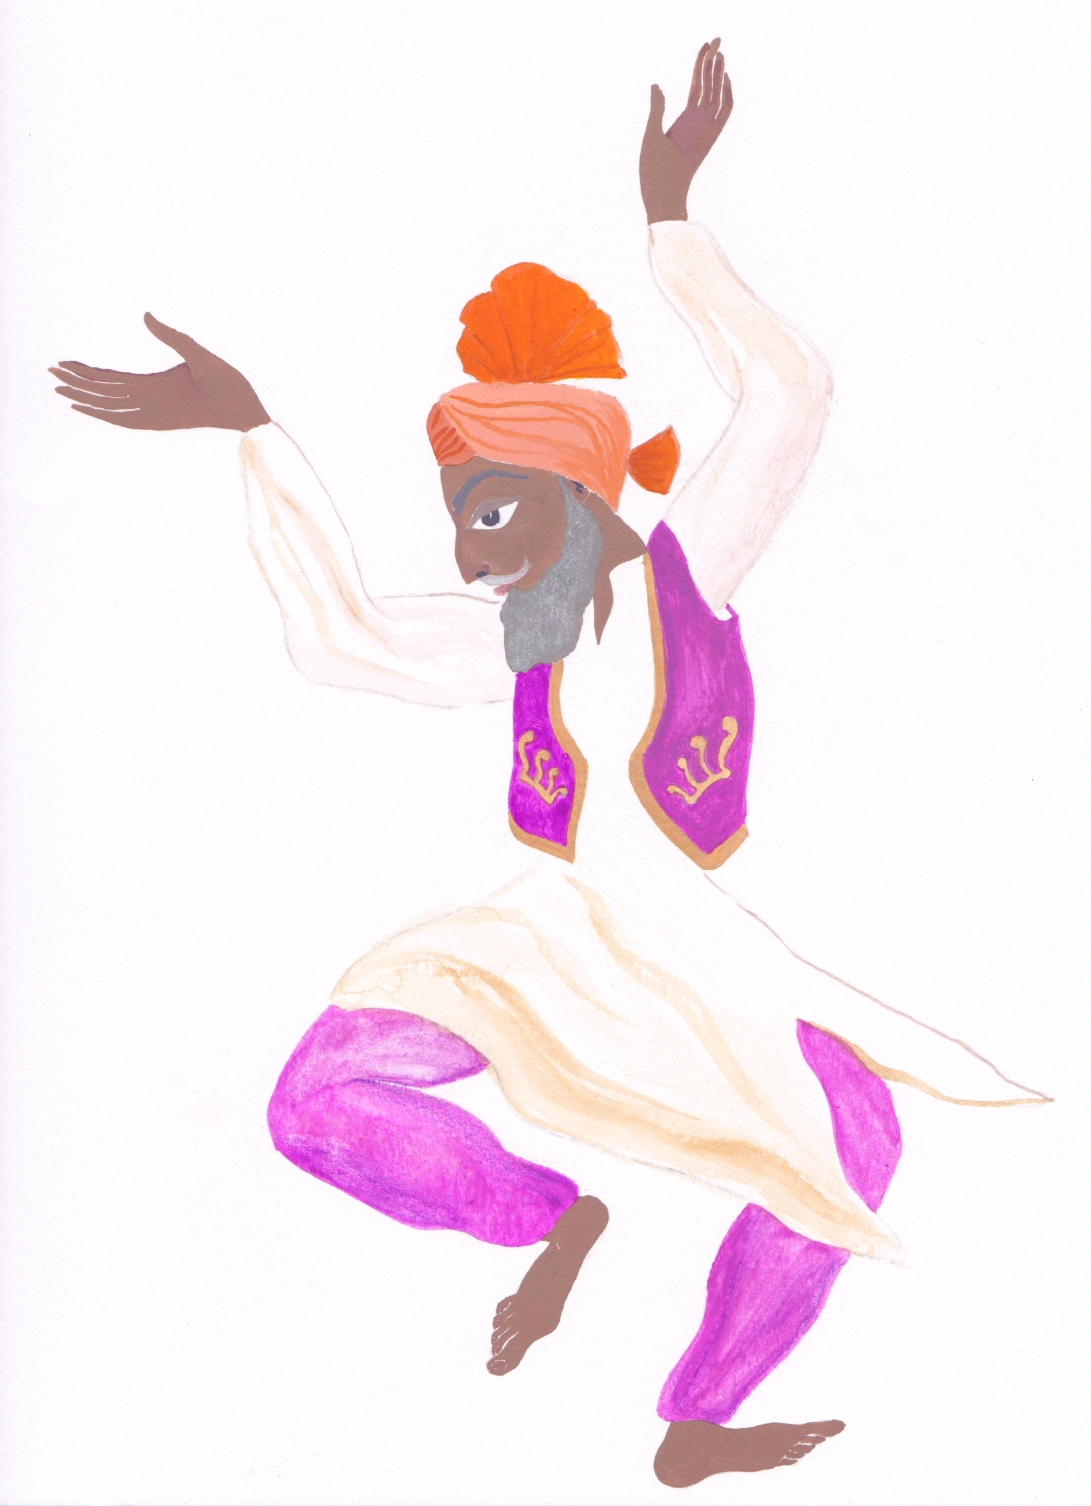 bangra dancer